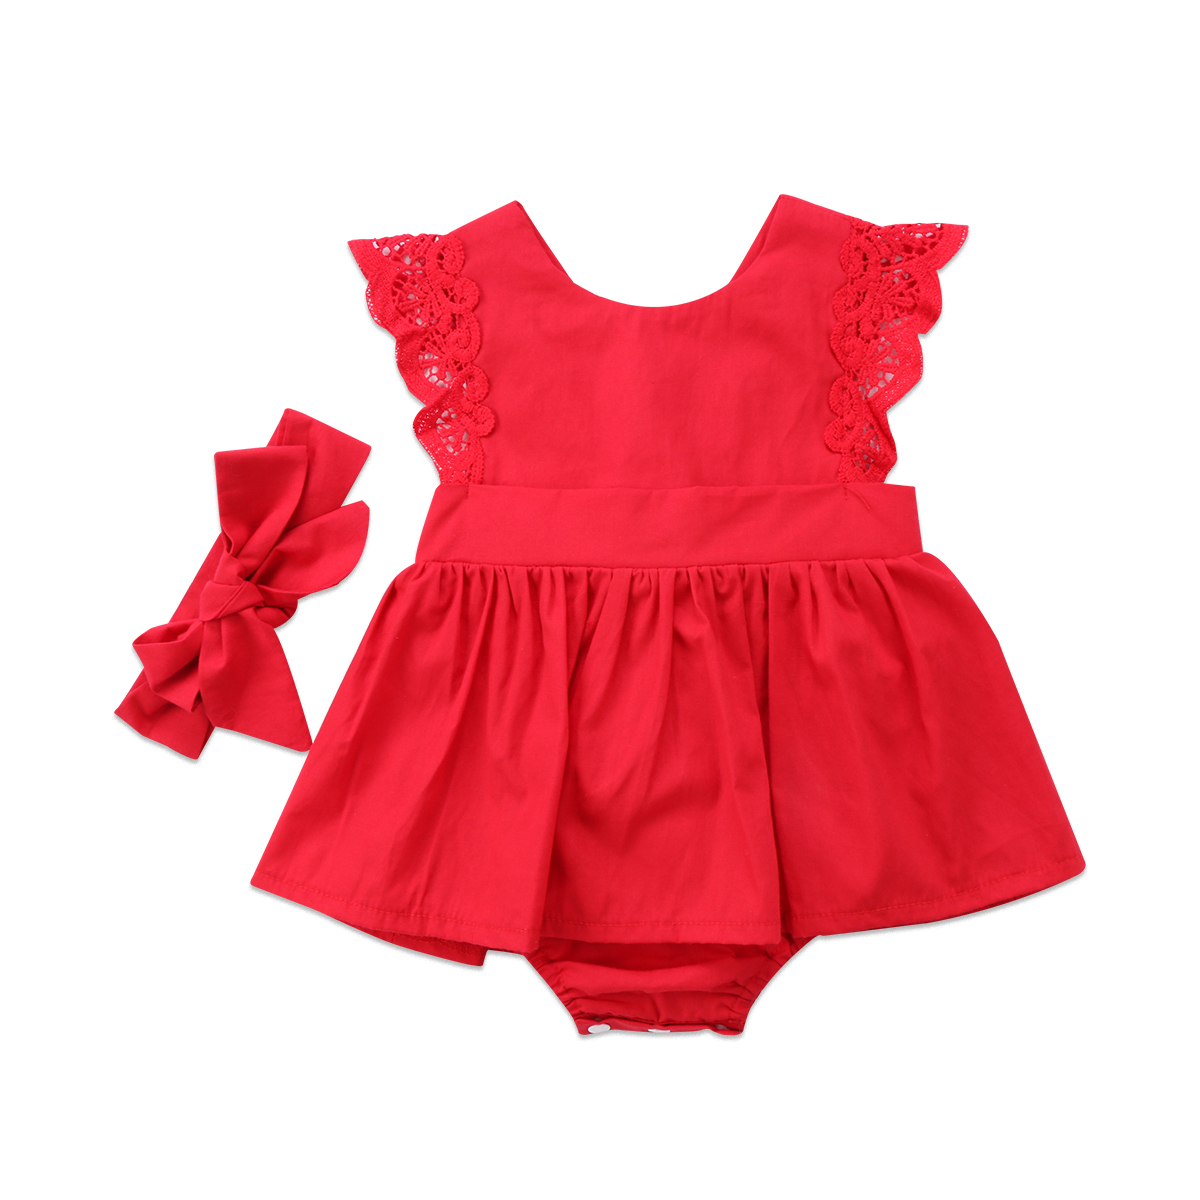 2018 Baby Christmas Red Bodysuit Dress Toddler Kids Baby Girl Lace Princess Dresses Flower Clothes contrast lace bodysuit